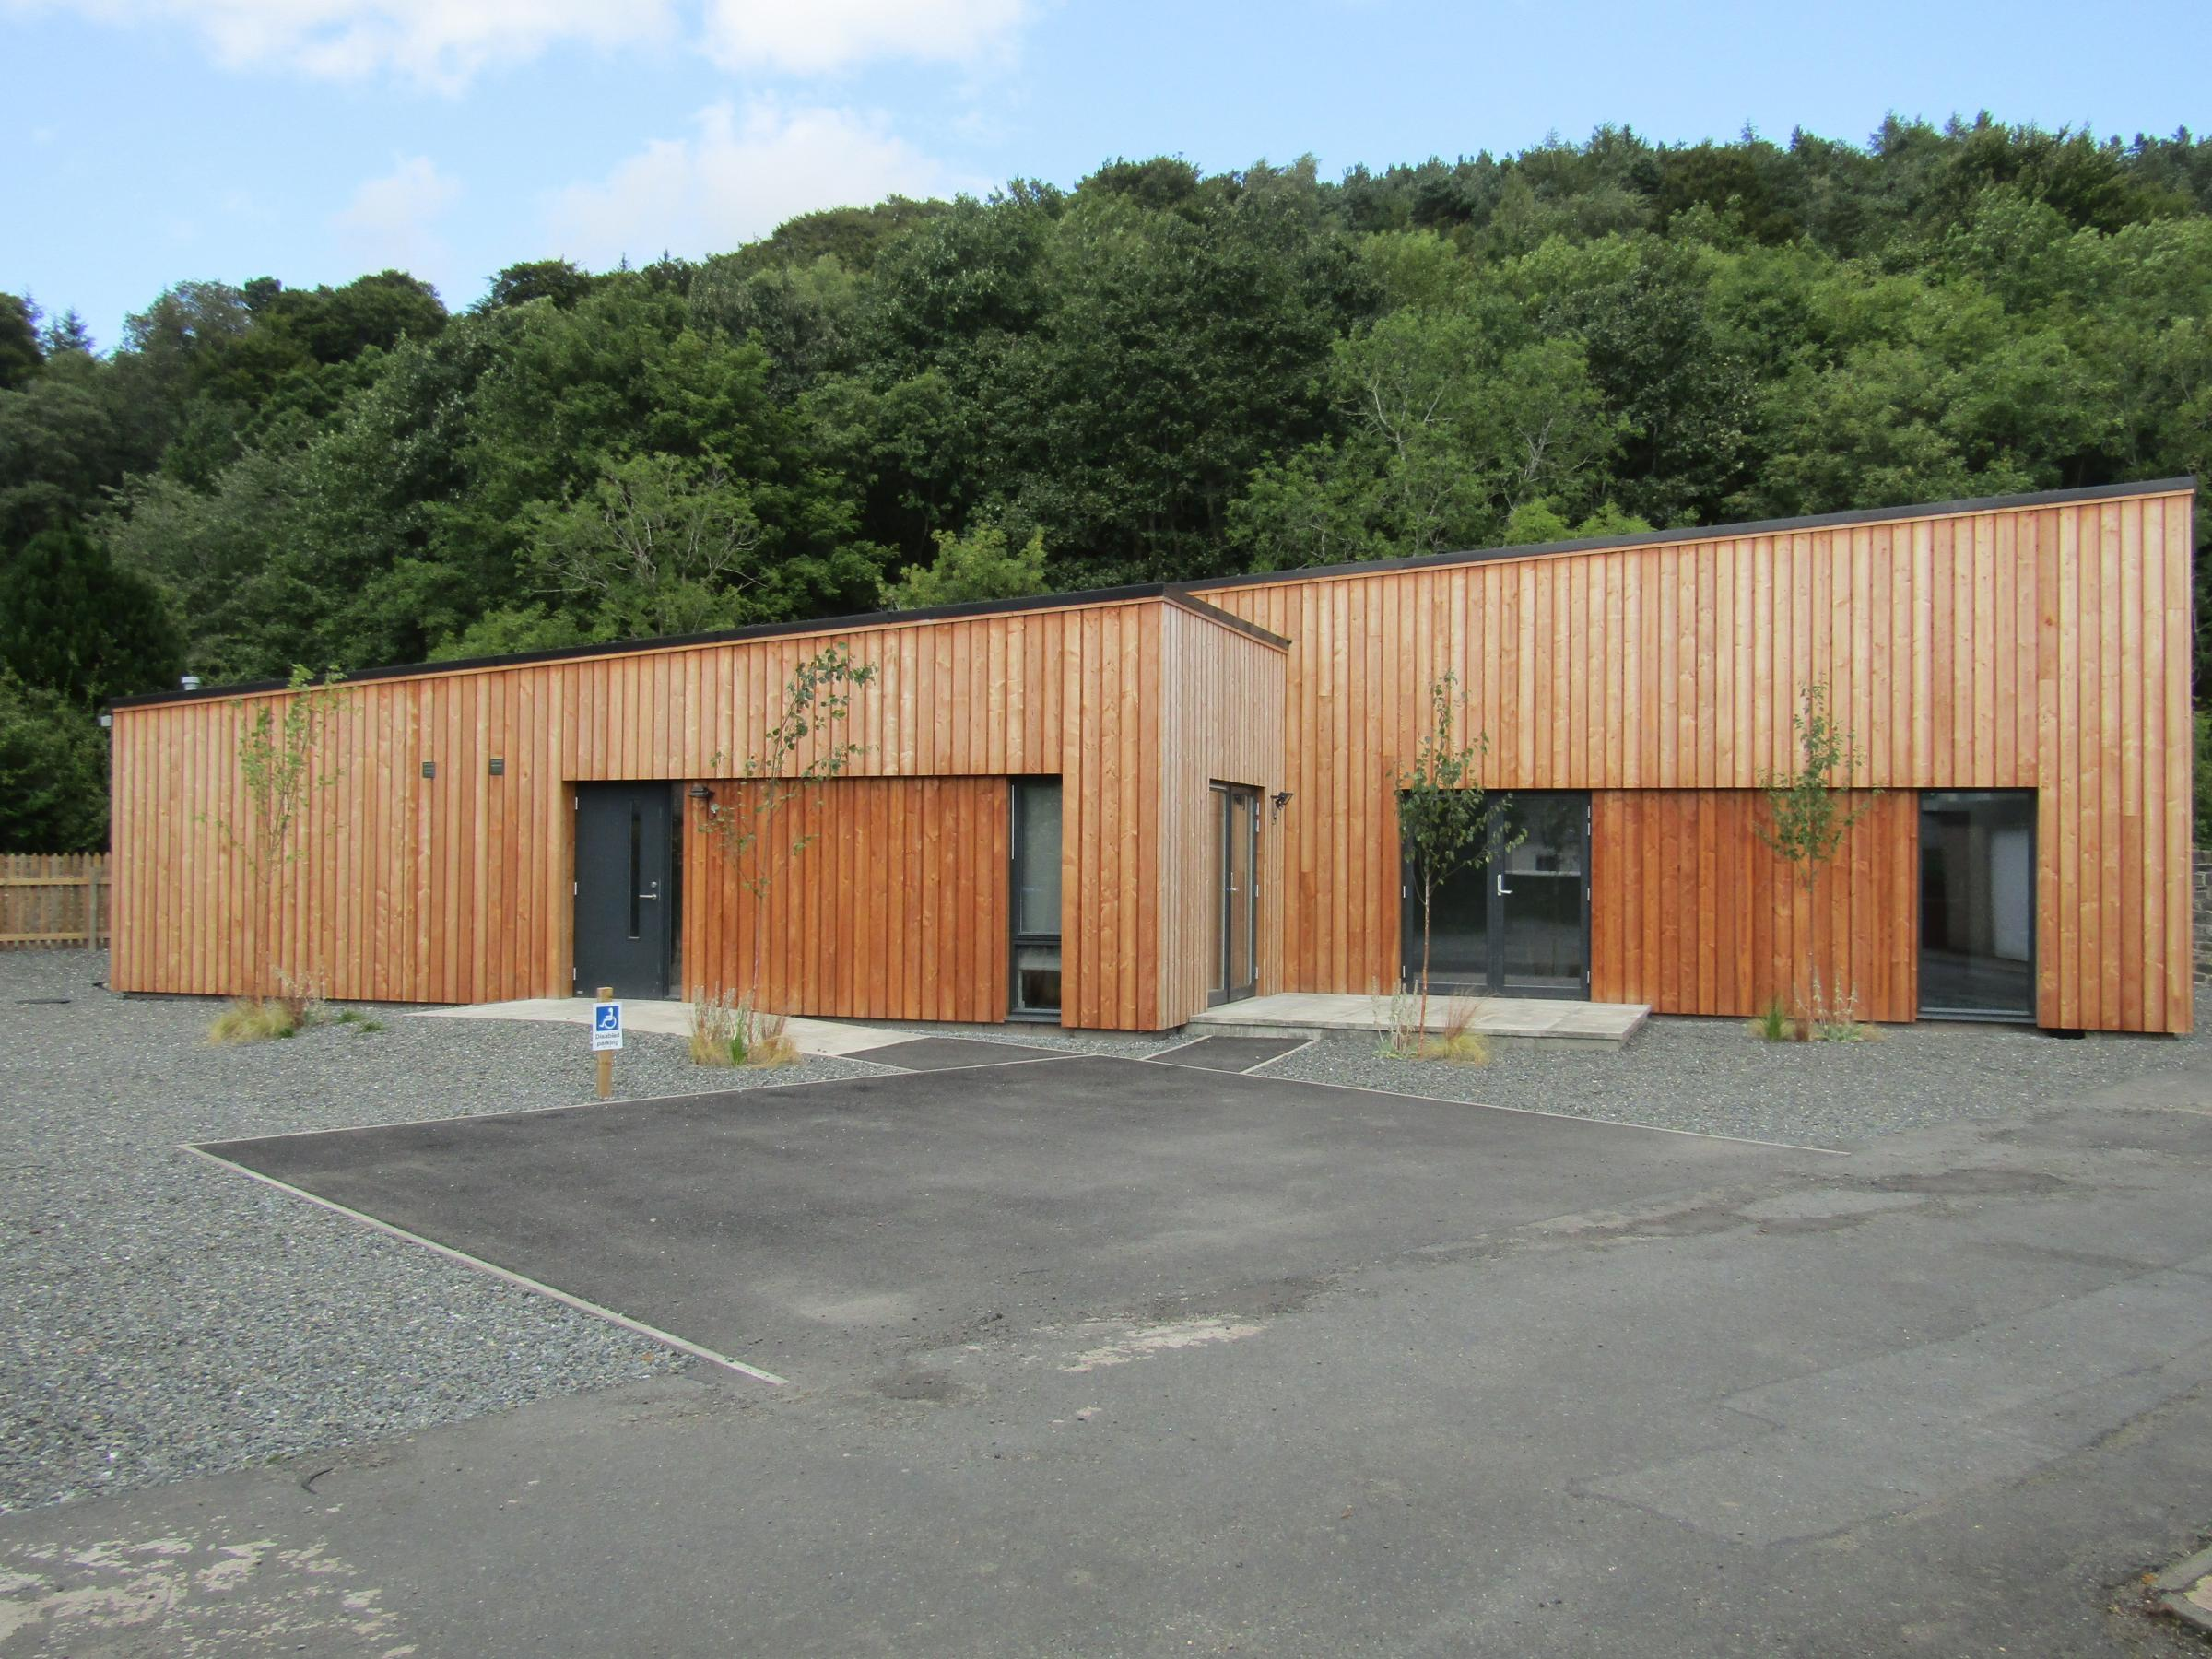 Peebles Scout Group's new hall